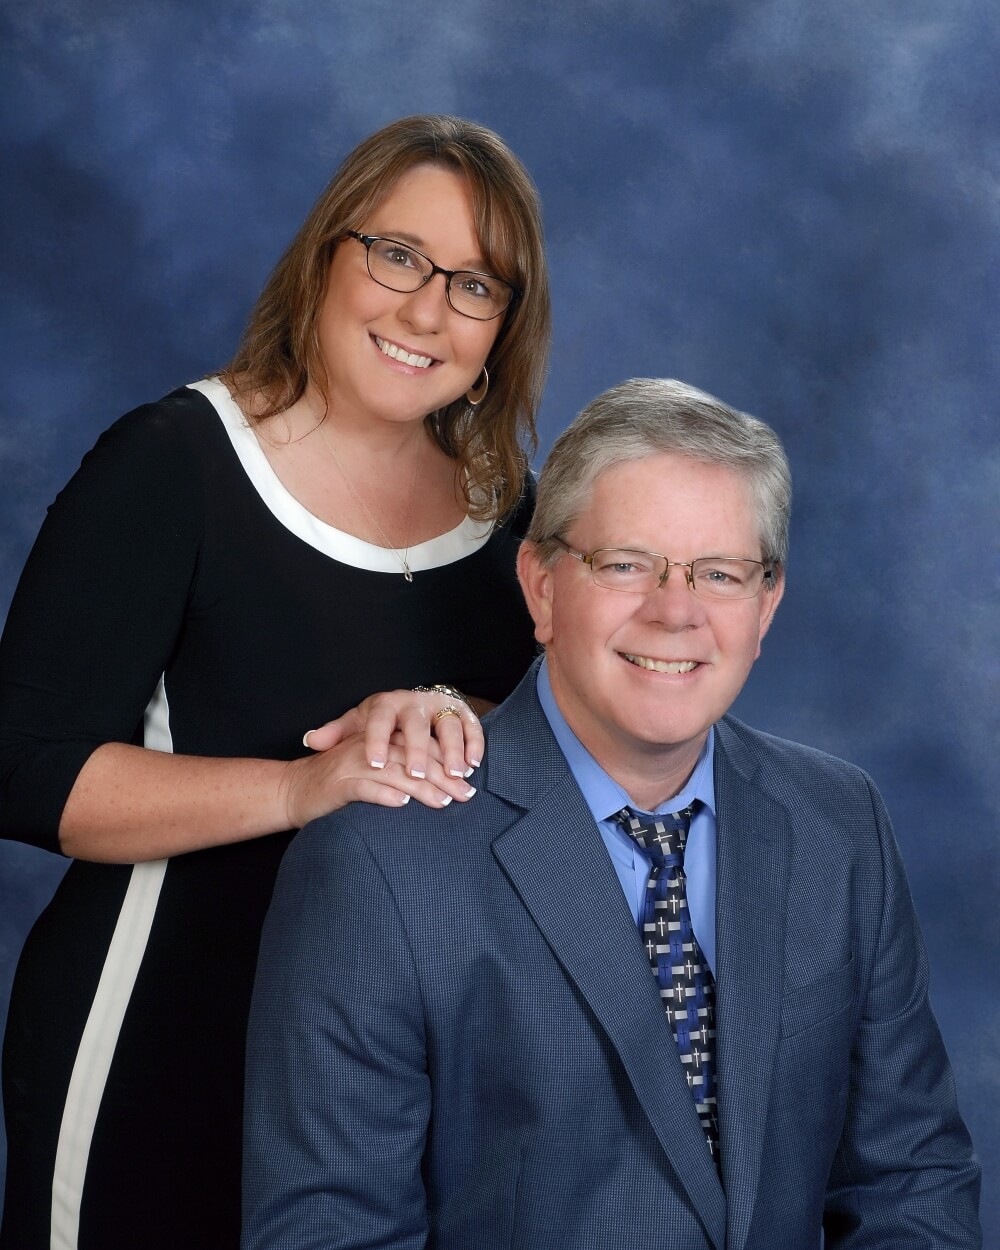 Pastor Don Grant and his wife Margie